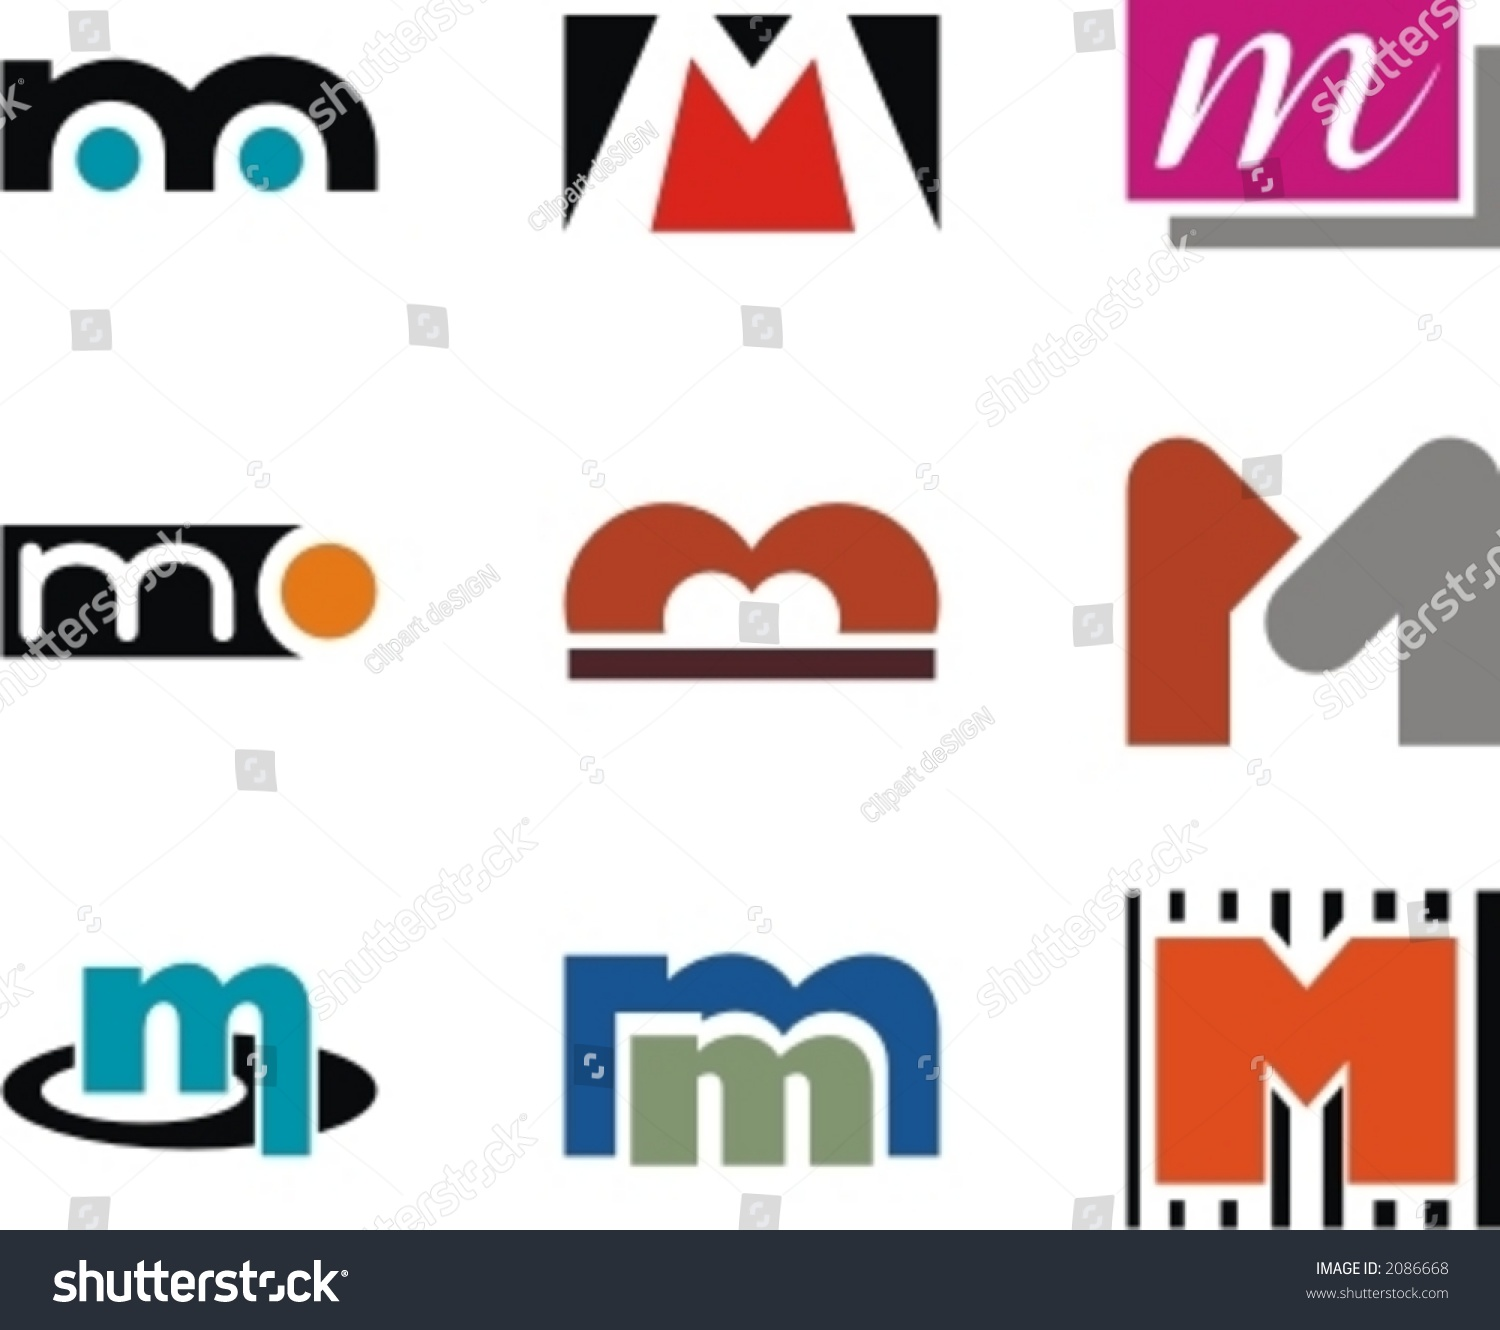 alphabetical logo design concepts letter m stock vector 2086668 alphabetical logo design concepts letter m check my portfolio for more of this series